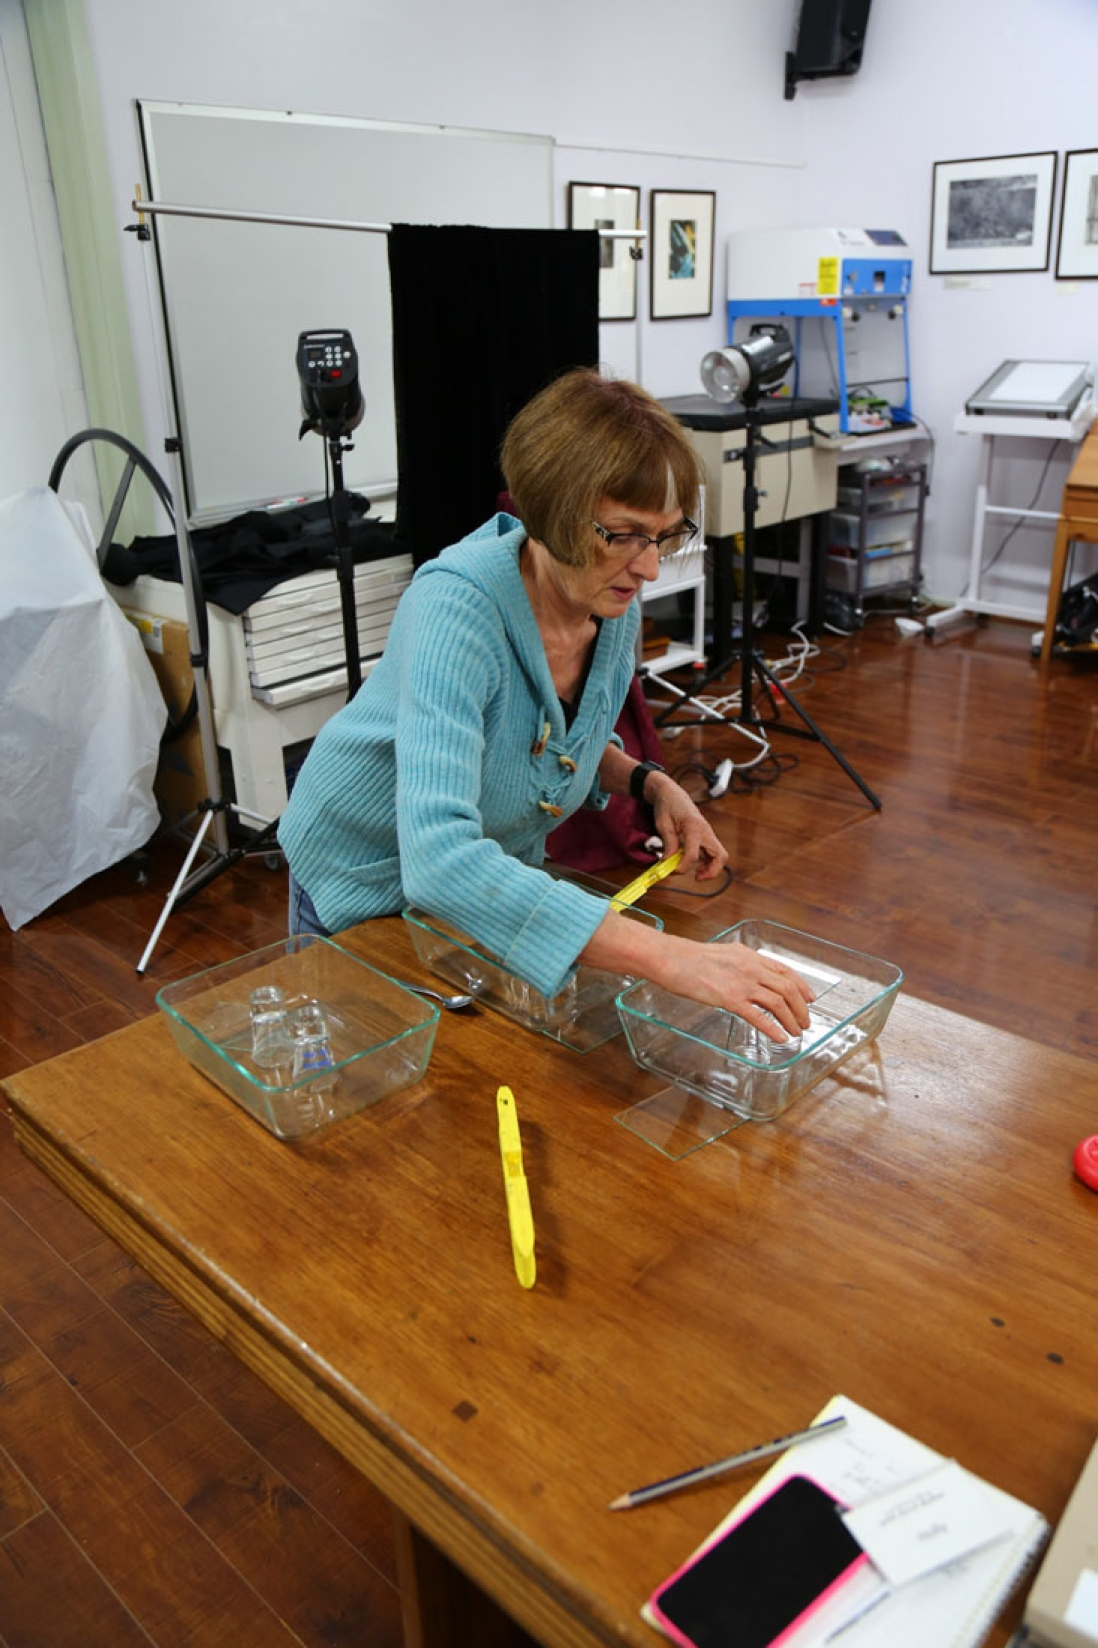 Woman in blue coat working on glass plate at large wooden benchtop.